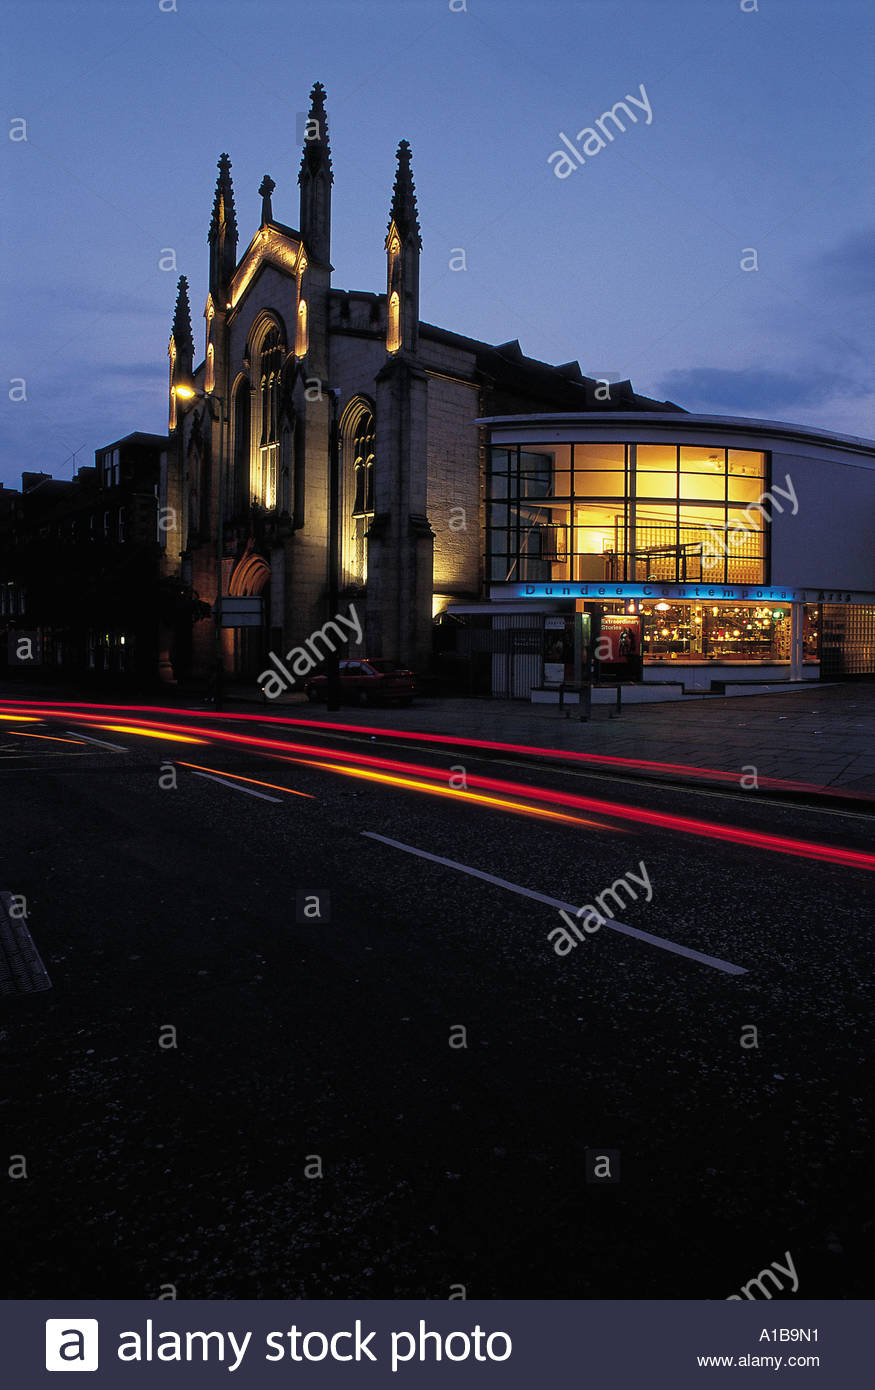 LOOKING ACROSS TO THE EXTERIOR OF THE DUNDEE CONTEMPORARY ARTS CENTRE AT DUSK - Stock Image